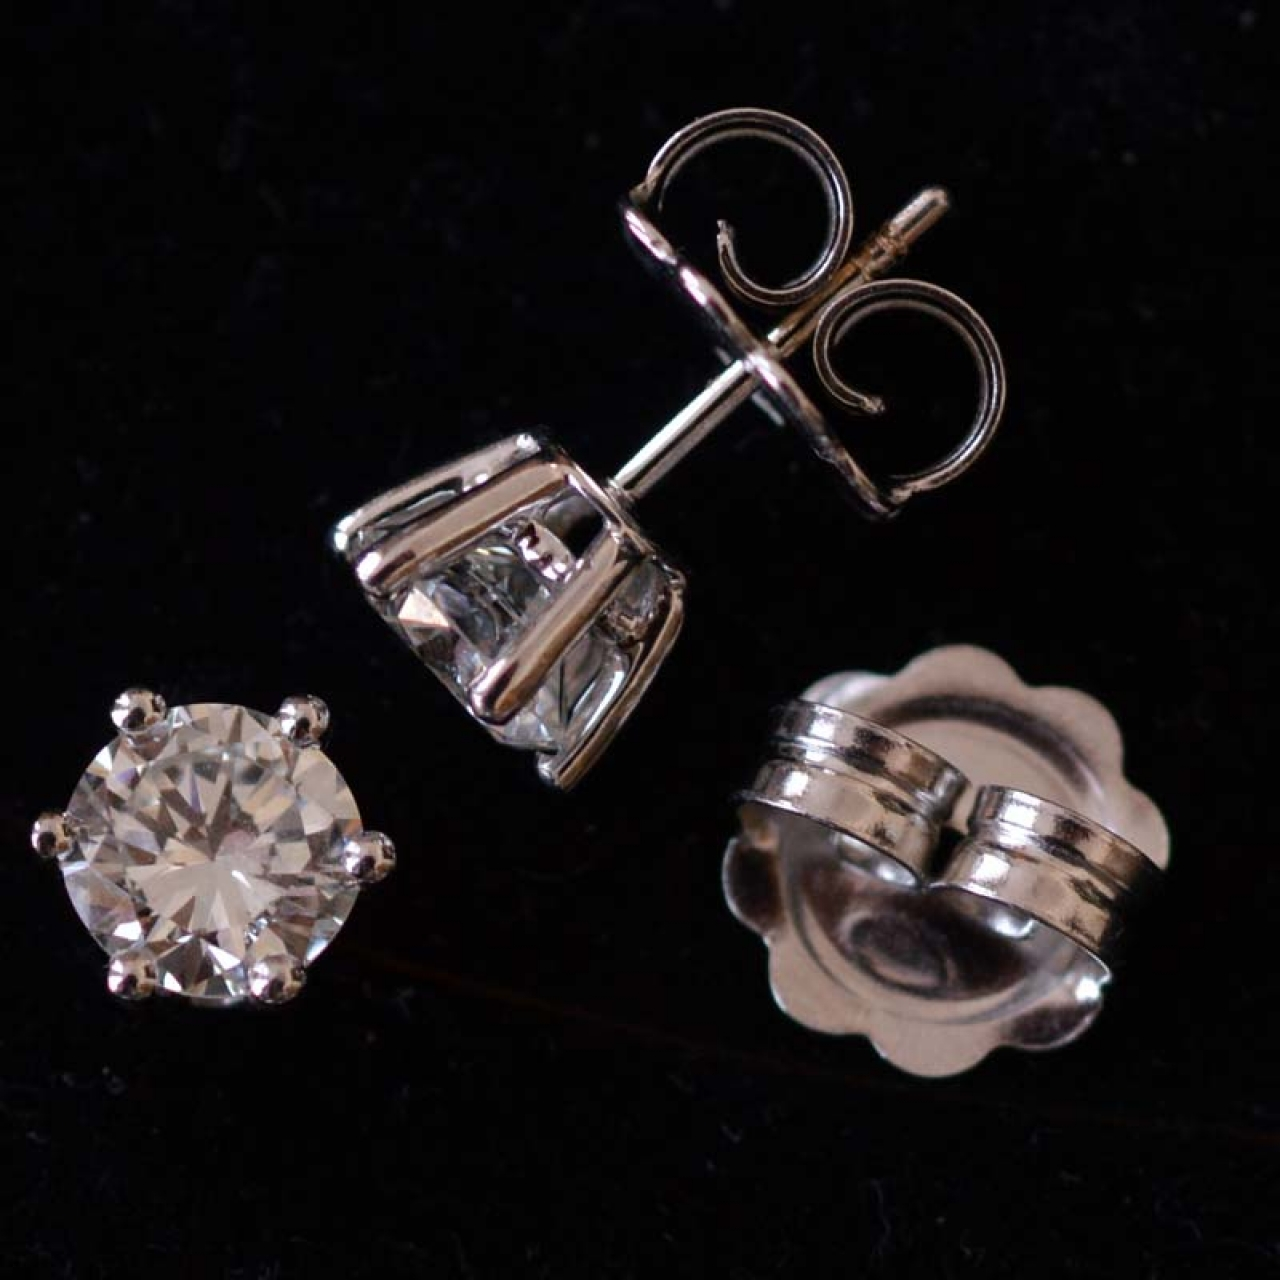 2 ct. diamond stud earrings